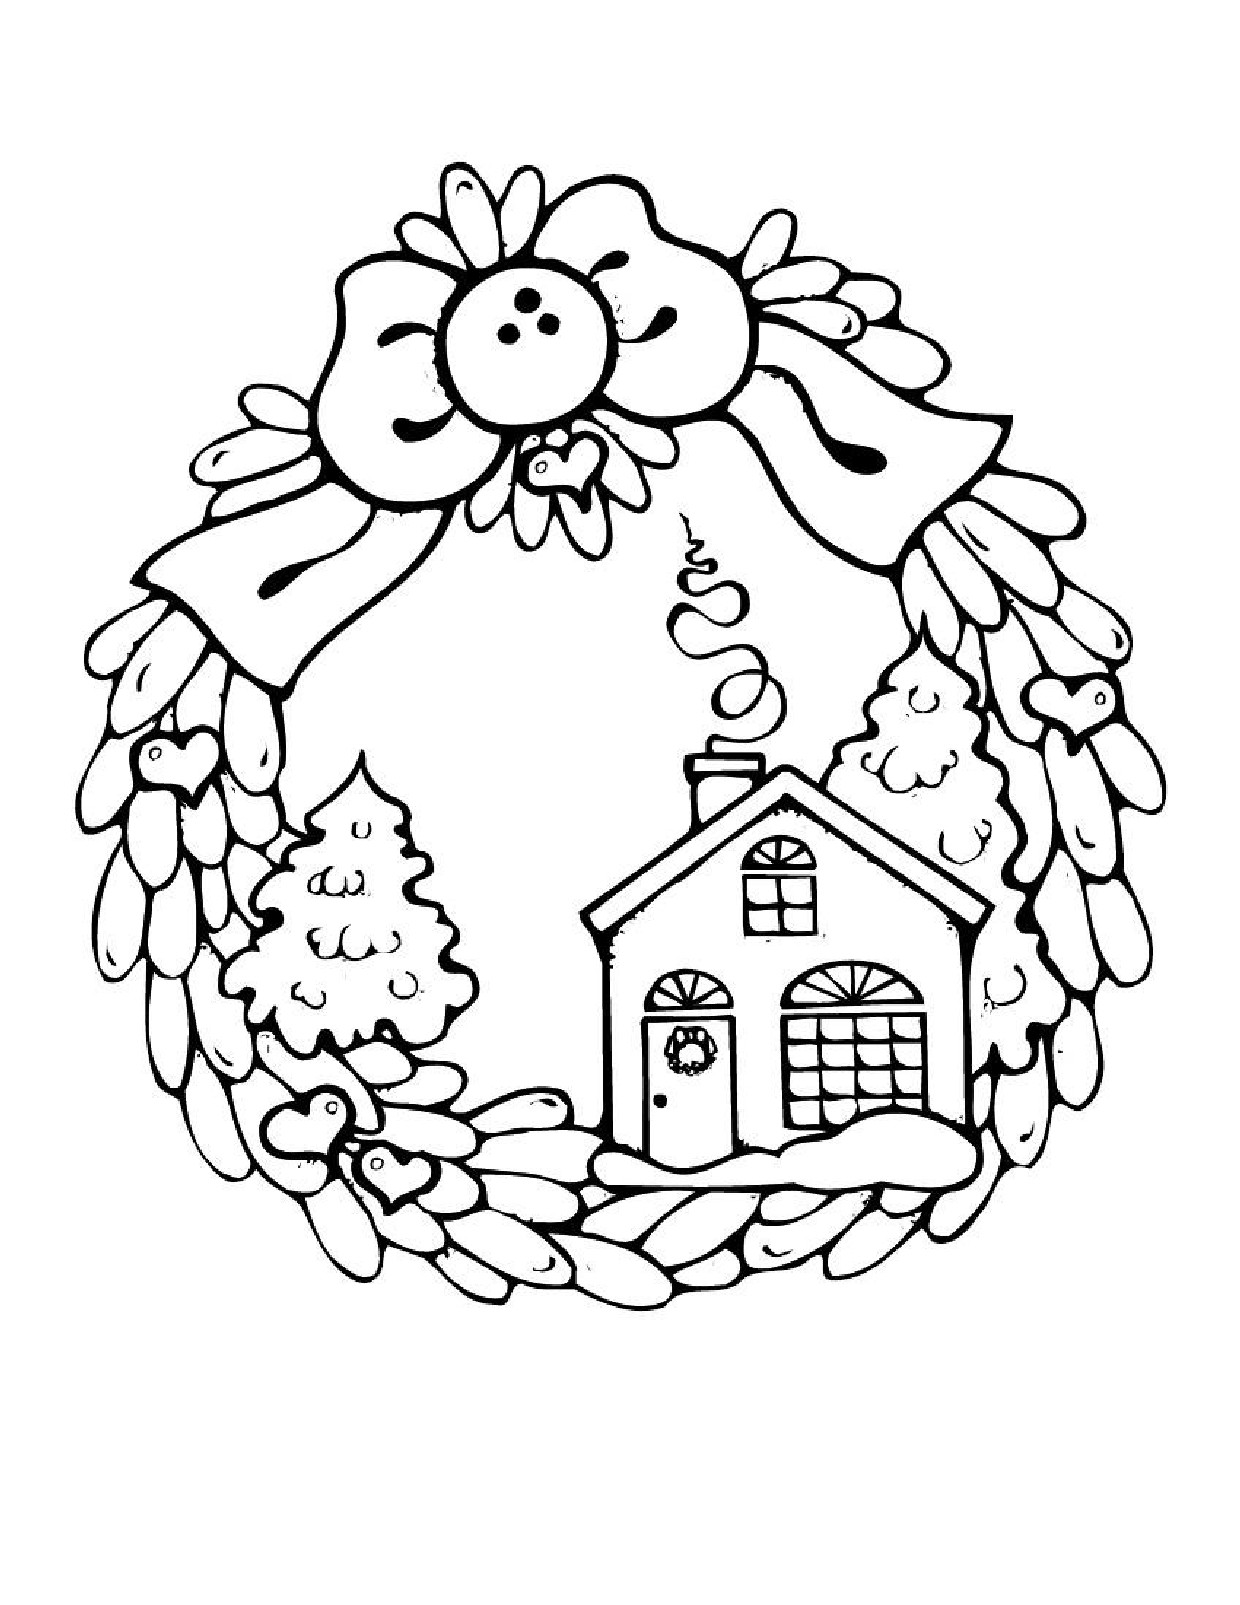 santa and his sleigh coloring pages santa in his sleigh coloring page coloring pages 4 u santa pages his and coloring sleigh